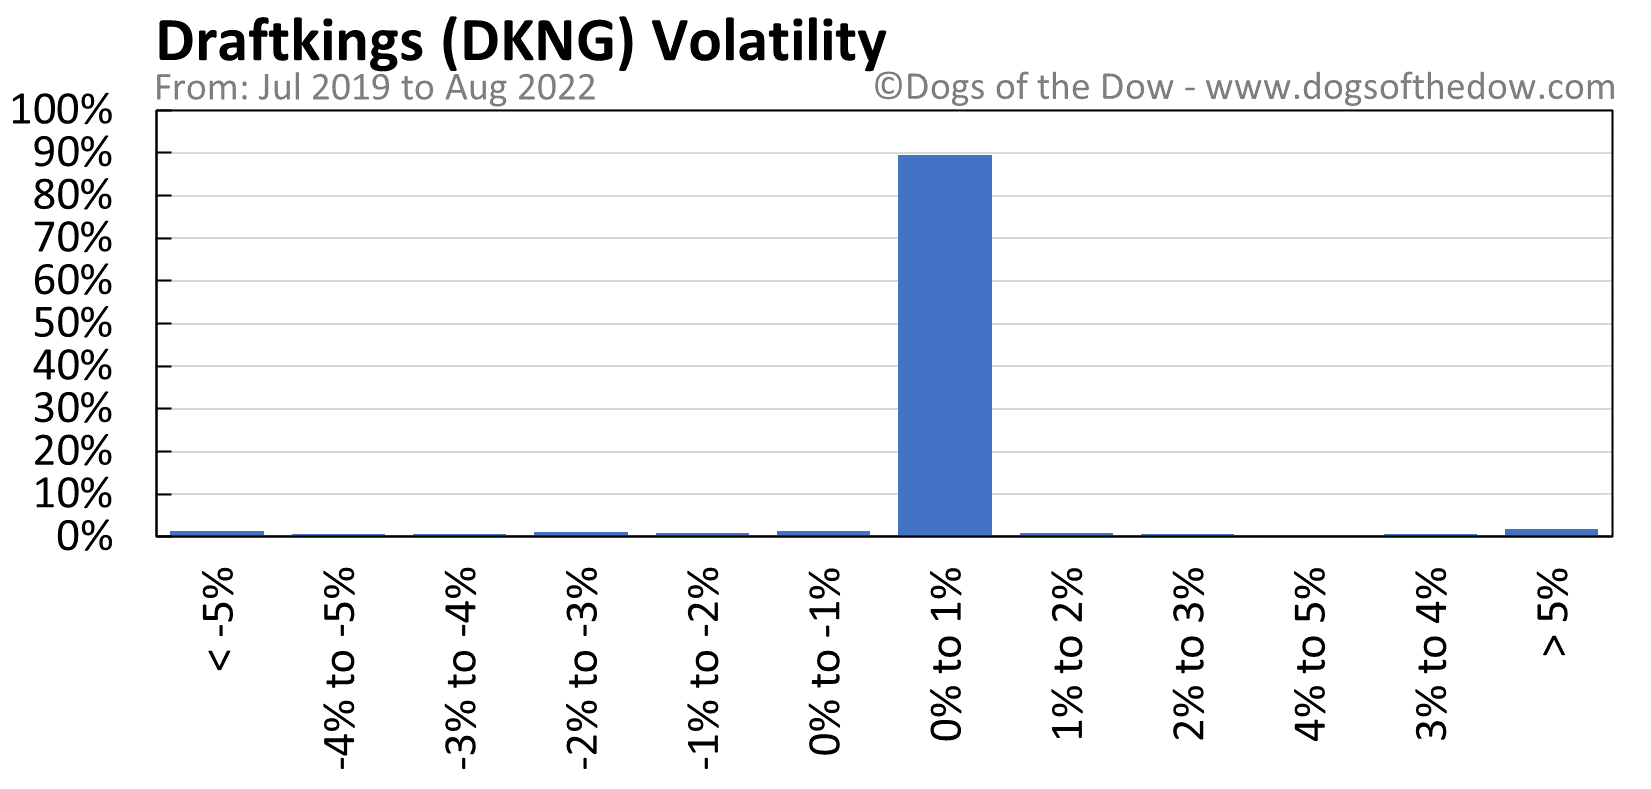 DKNG volatility chart